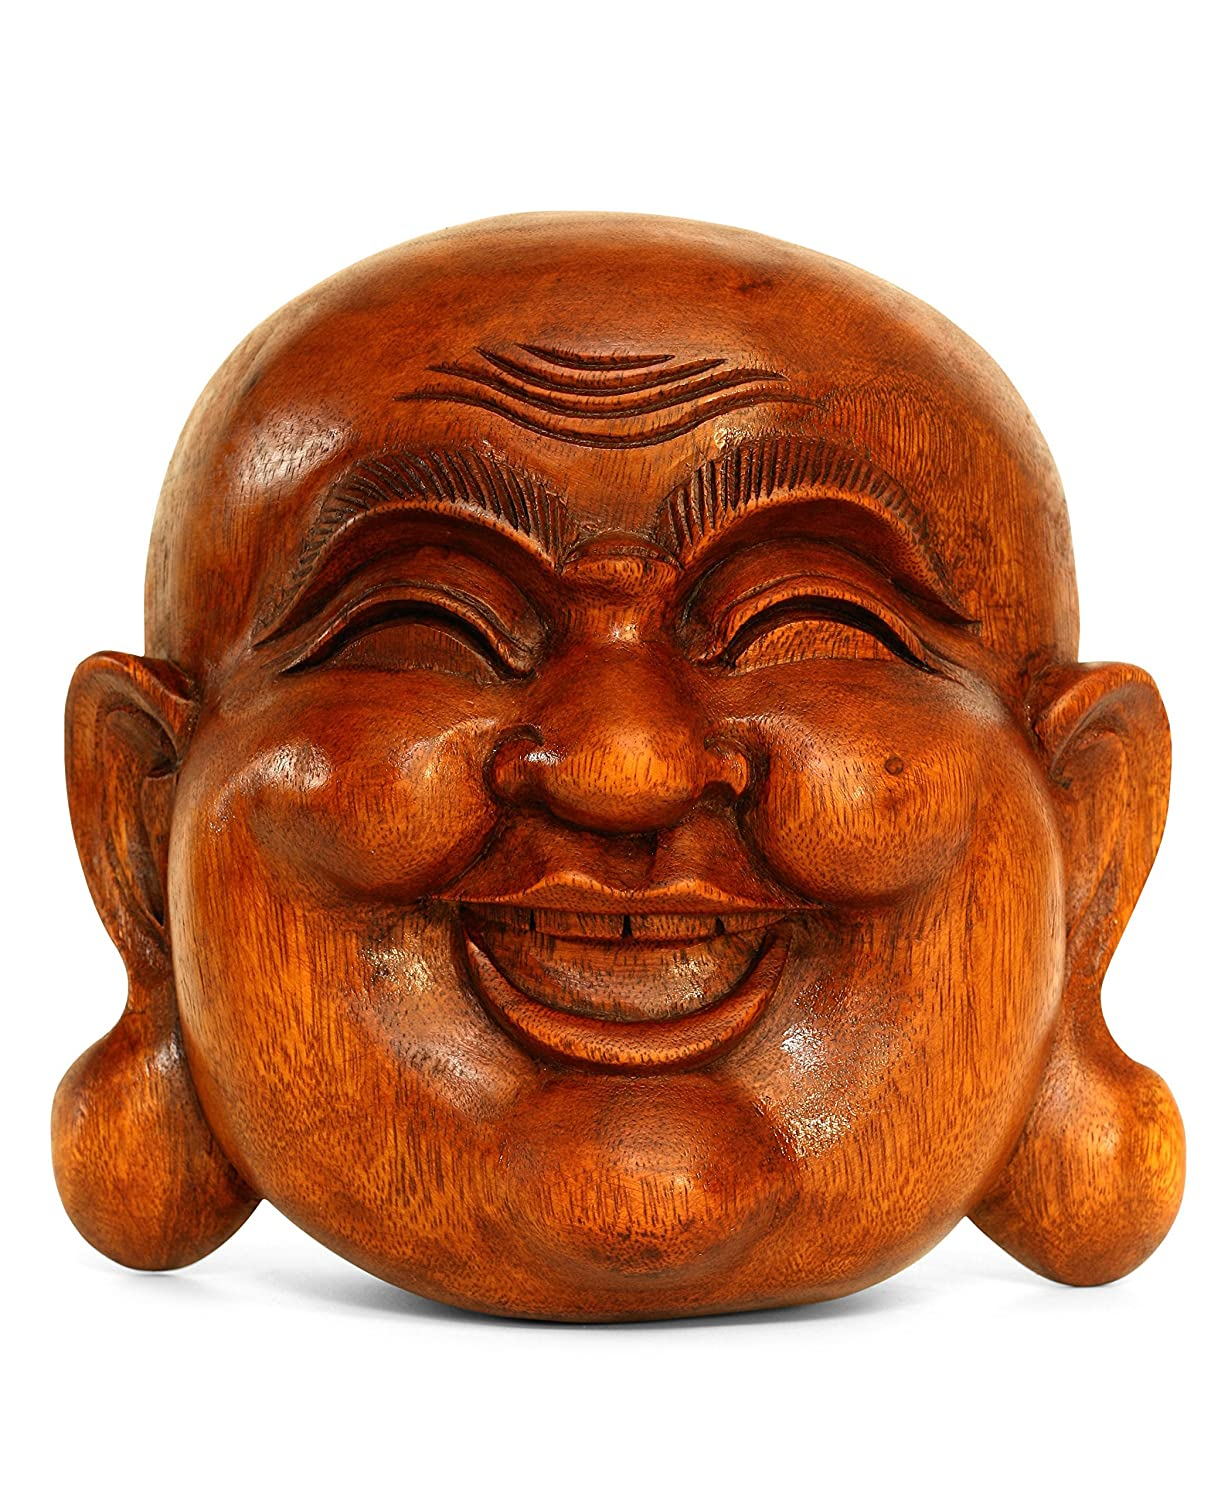 G6 COLLECTION Wooden Wall Mask Laughing Smiling Happy Buddha Head Statue Hand Carved Stand Alone Sculpture Handmade Figurine Decorative Home Decor Accent Rustic Handcrafted Art Wall Hanging Decoration